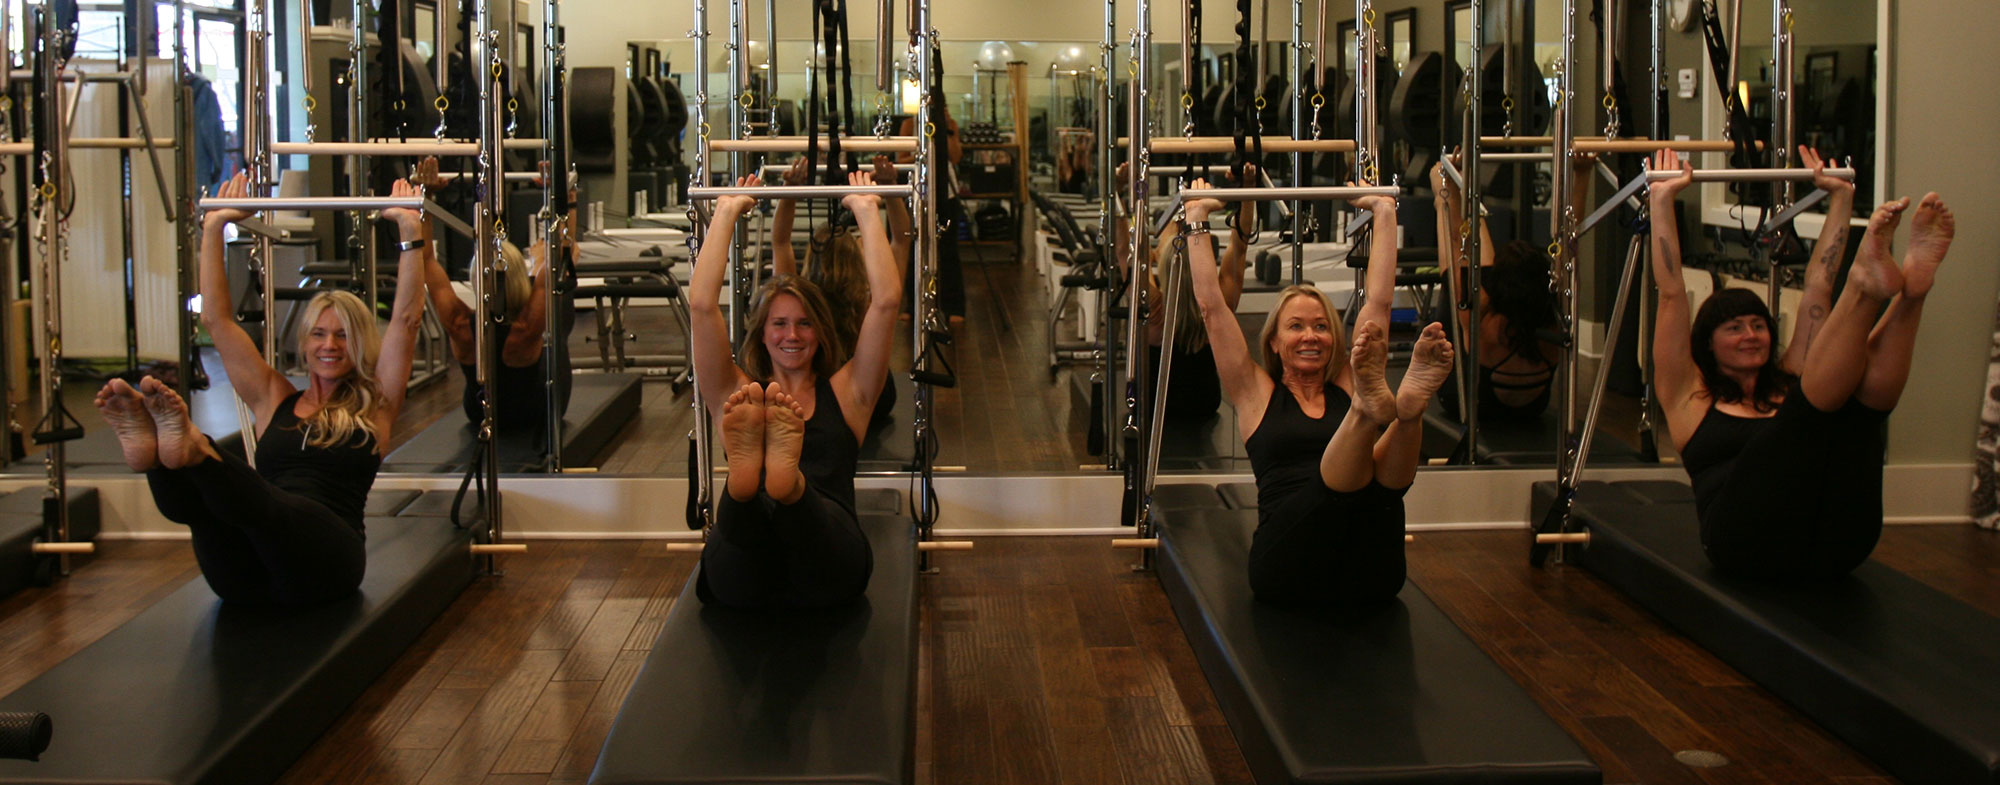 Pilates Reformer class at Pilates Napa Valley